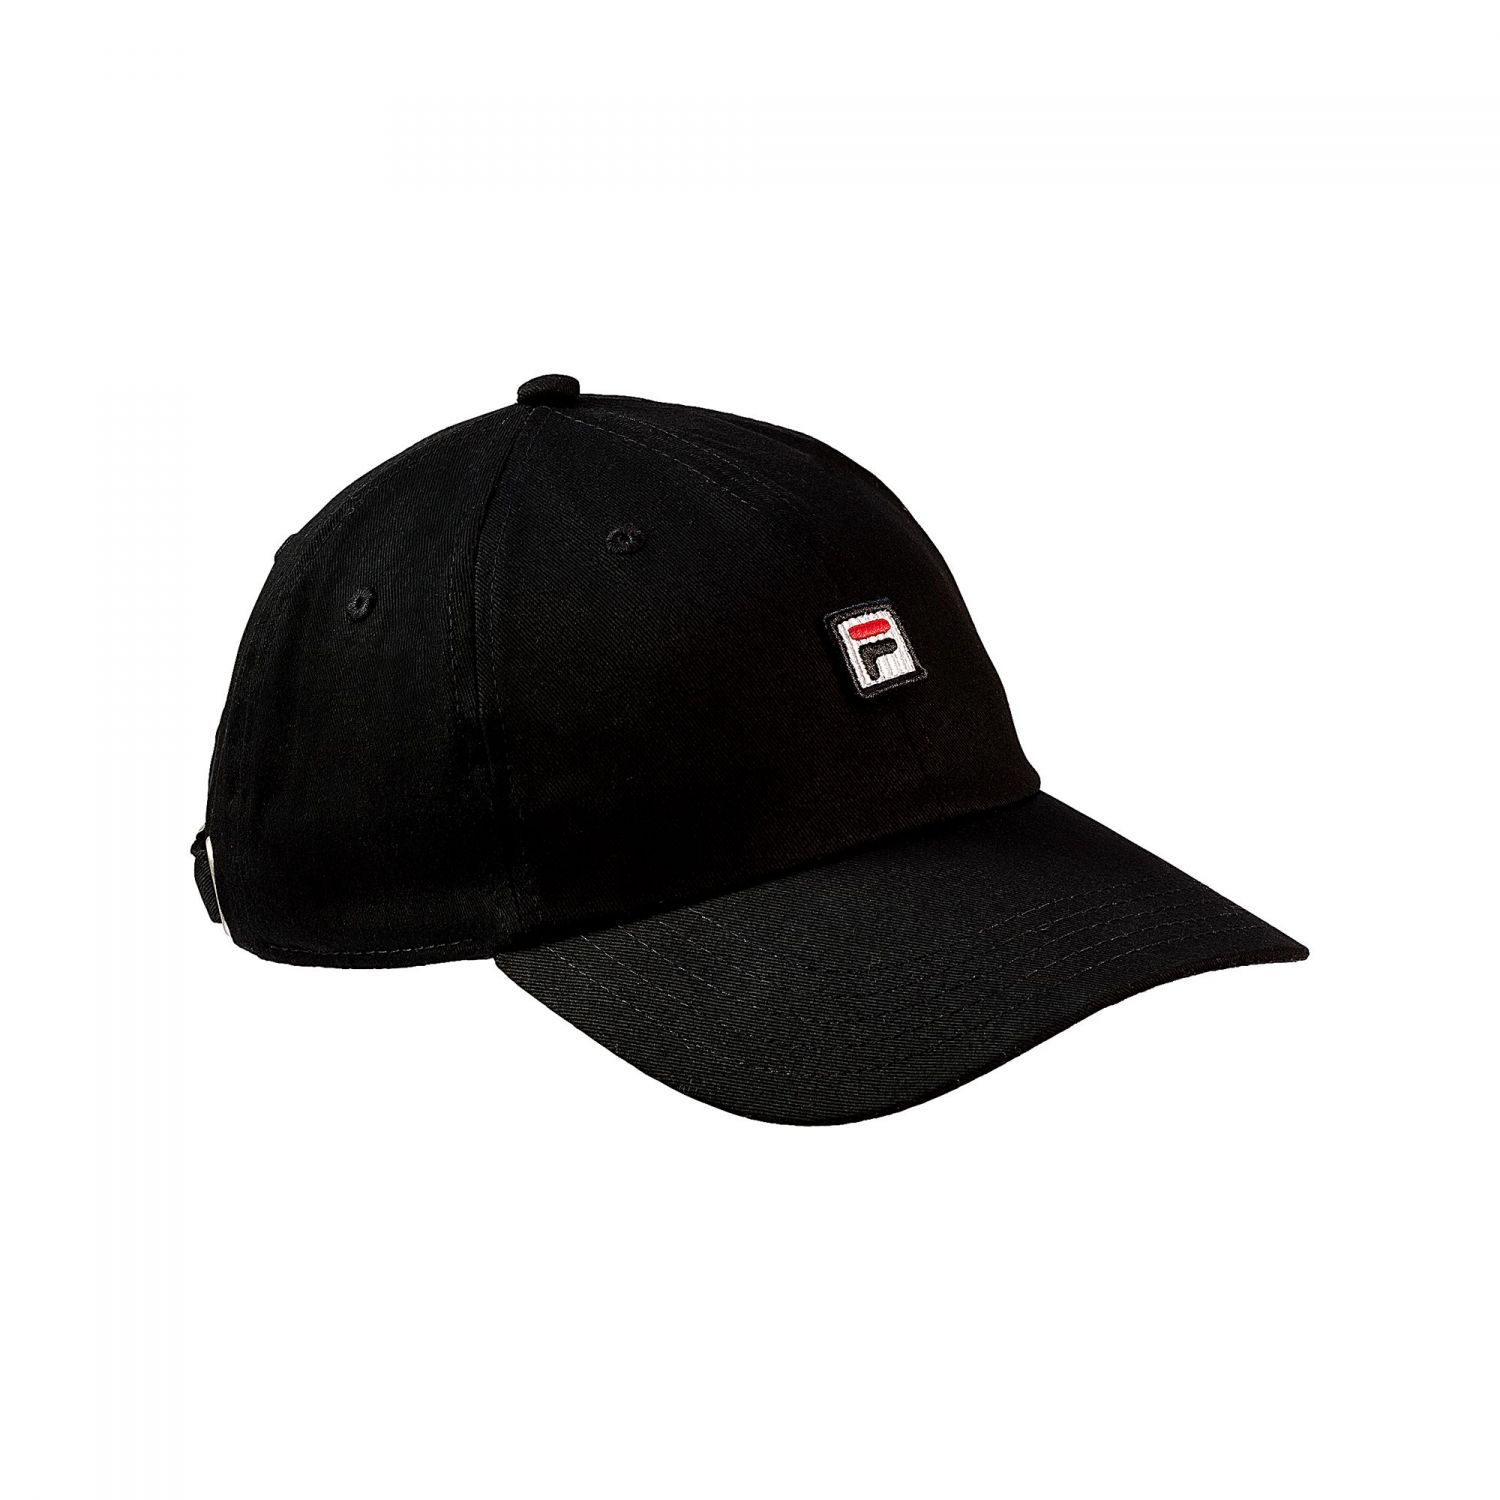 bdc0cc3ad7573f Fila Dad Cap Strap Back - black | FILA Official